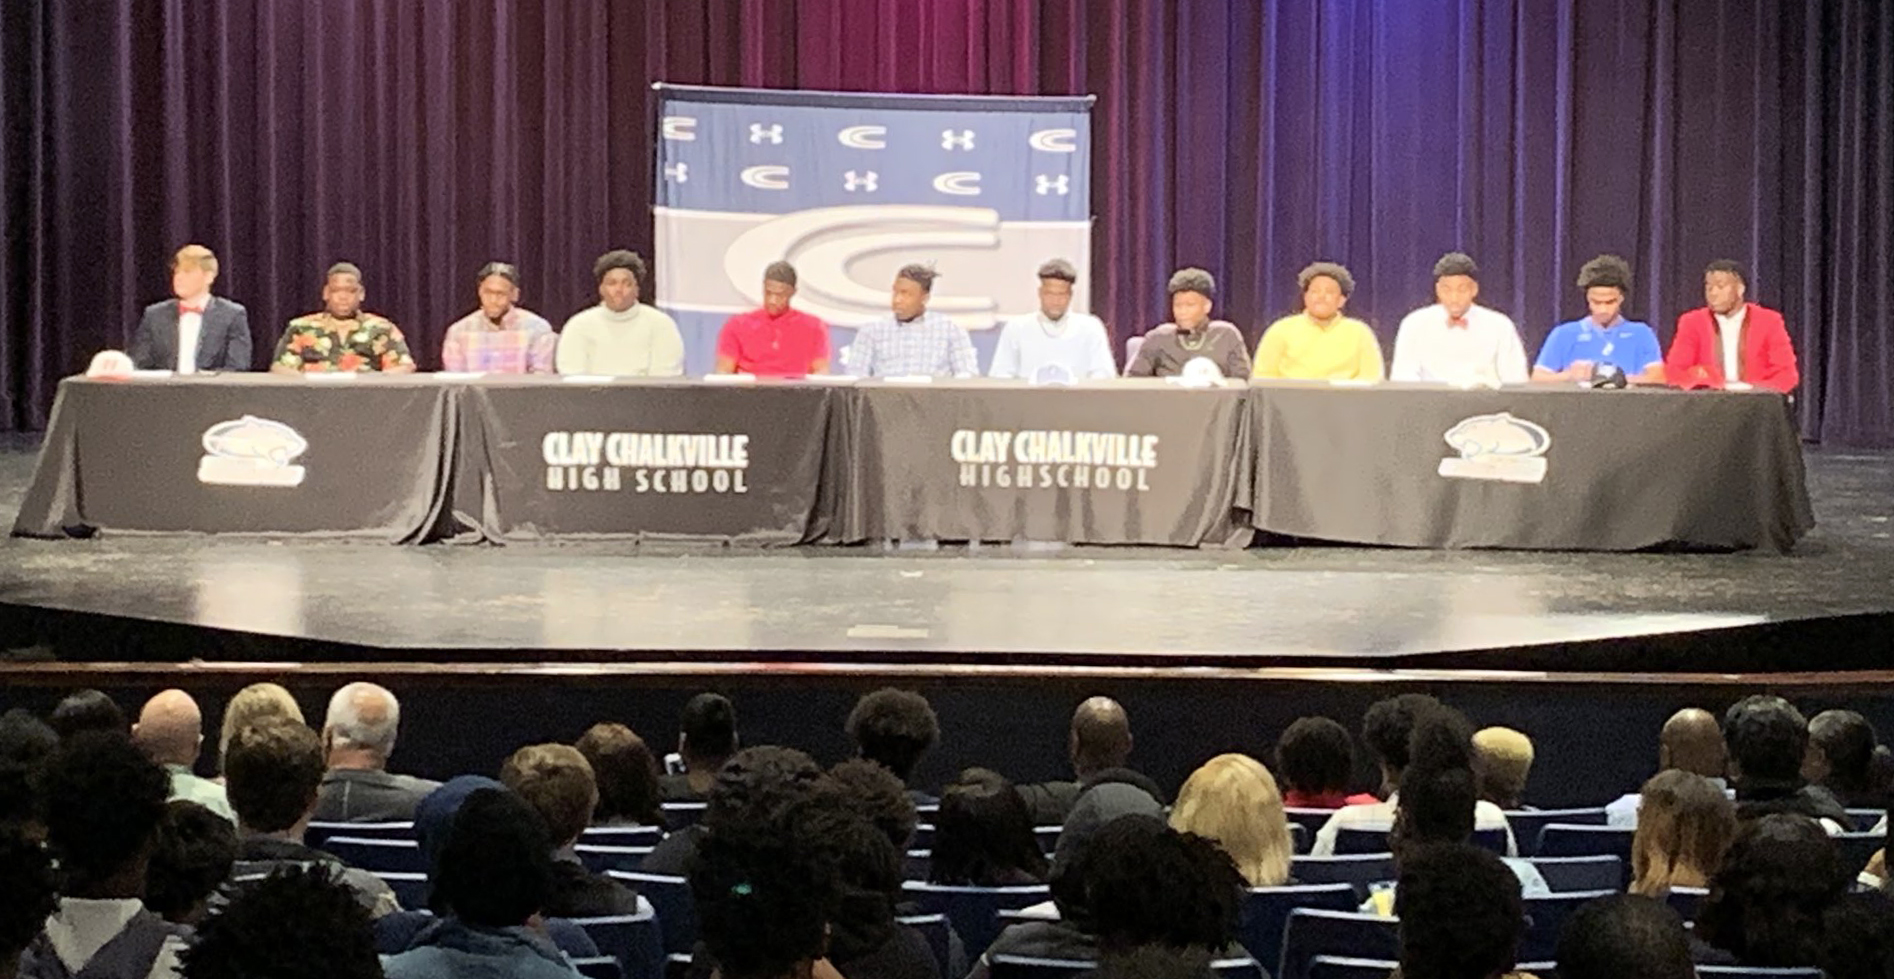 Clay-Chalkville witnesses a dozen players realize their dream of playing collegiate football